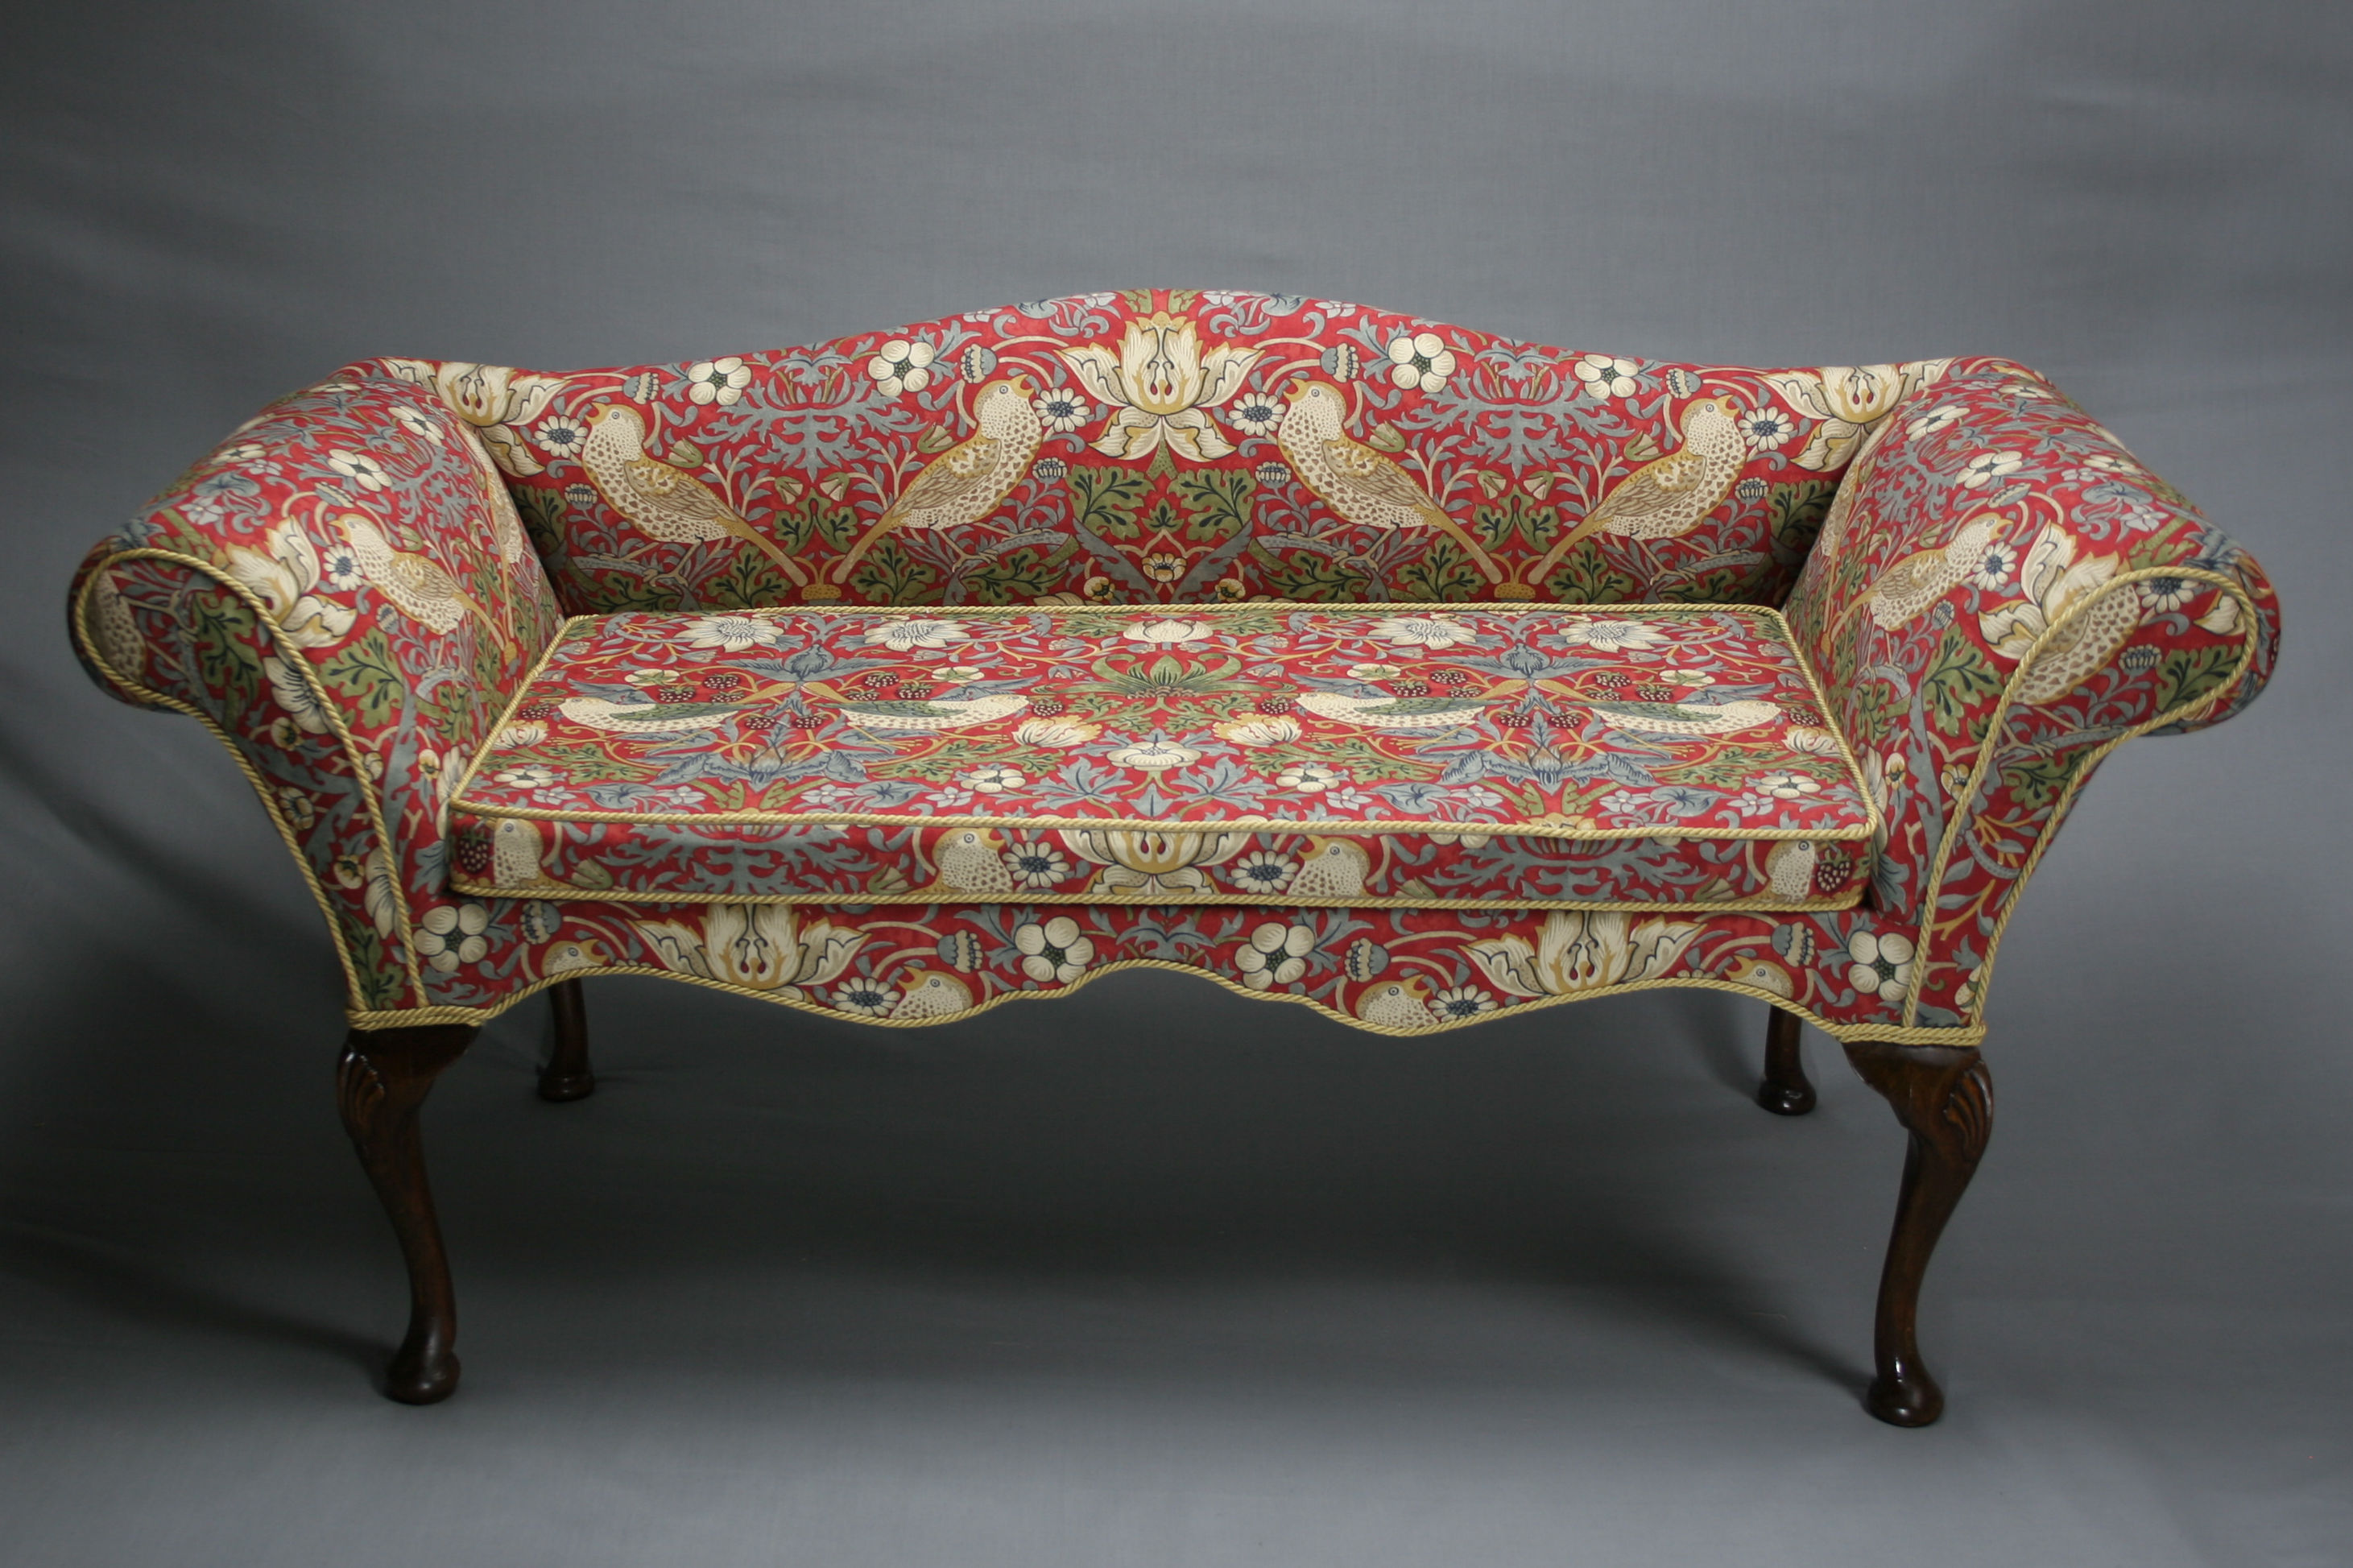 Vintage William Morris Love Seat Sold Antique Chairs